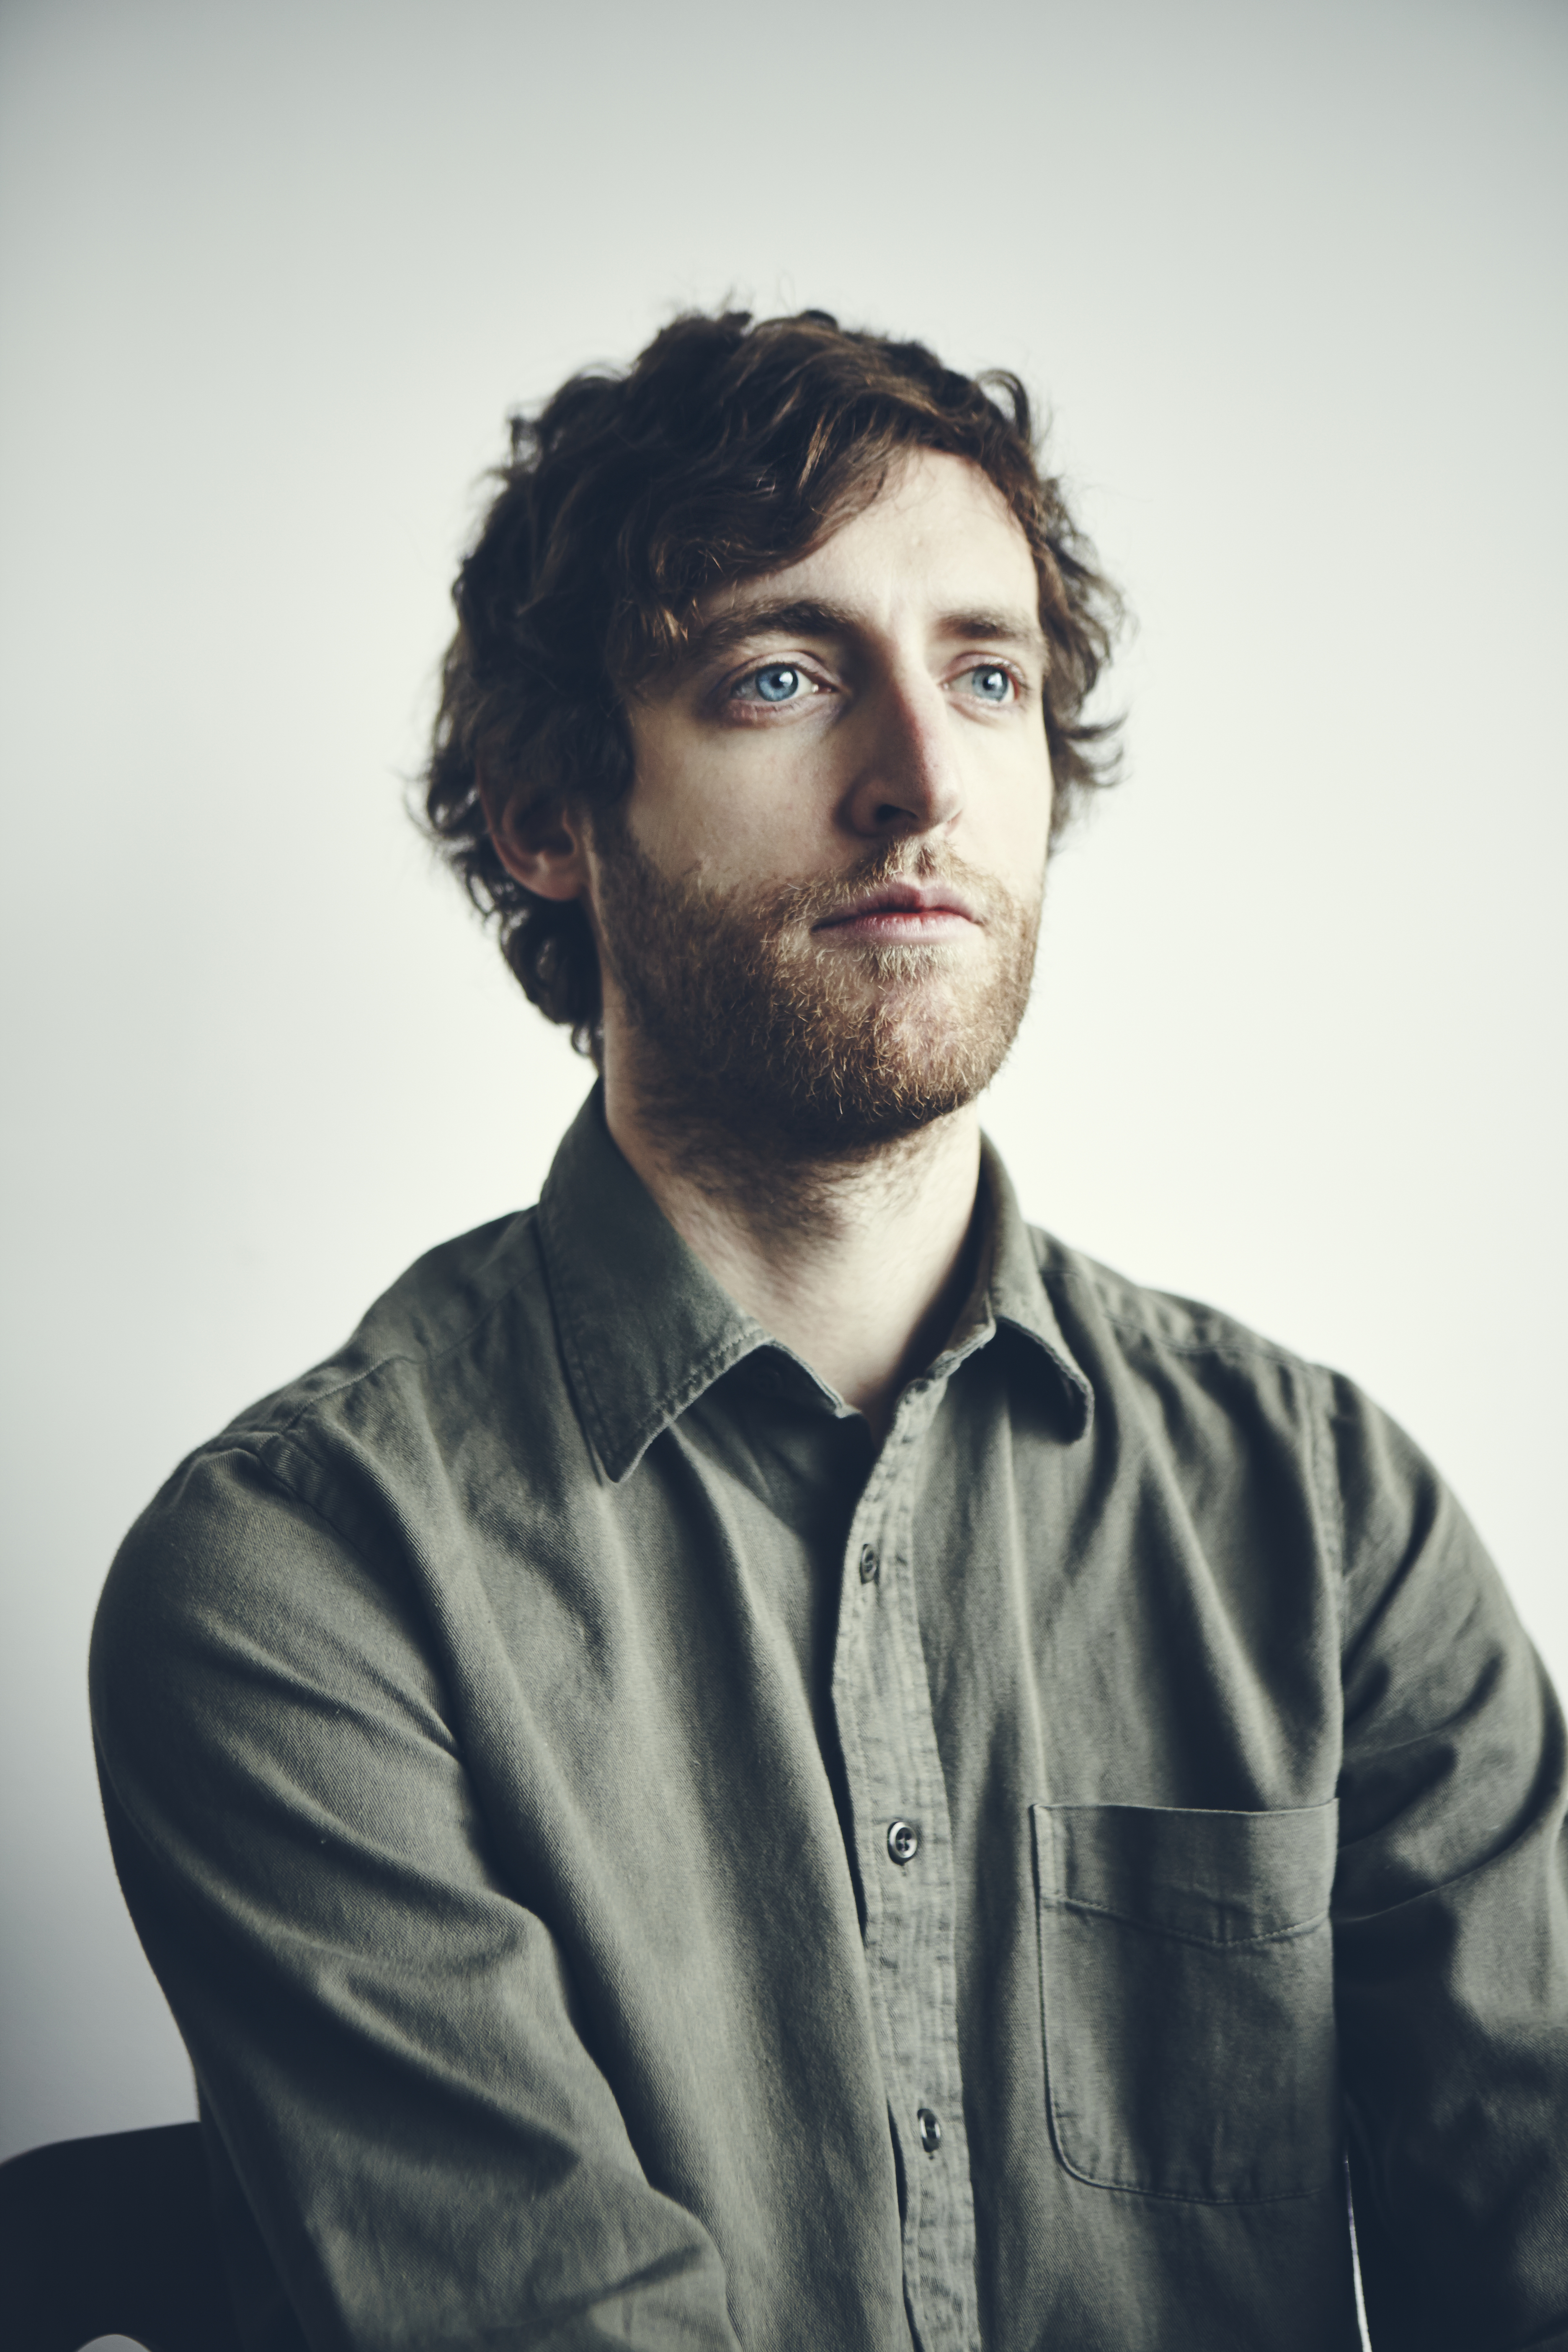 Thomas Middleditch Is the Celebrity Keynote at InfluenceHR 2016